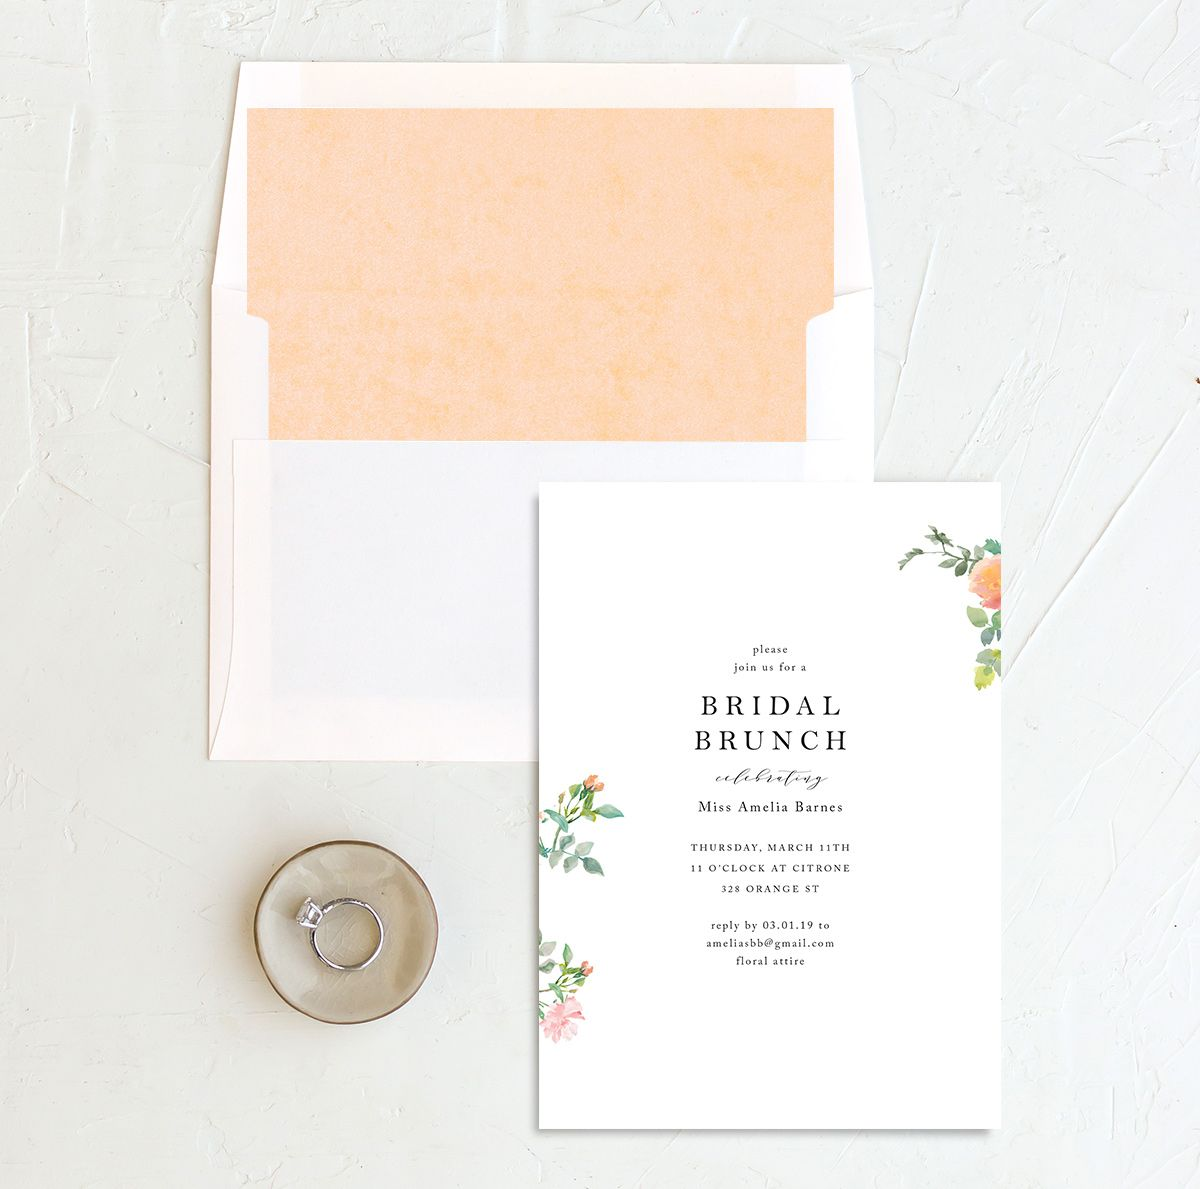 Minimal Floral Bridal Brunch invite with liner